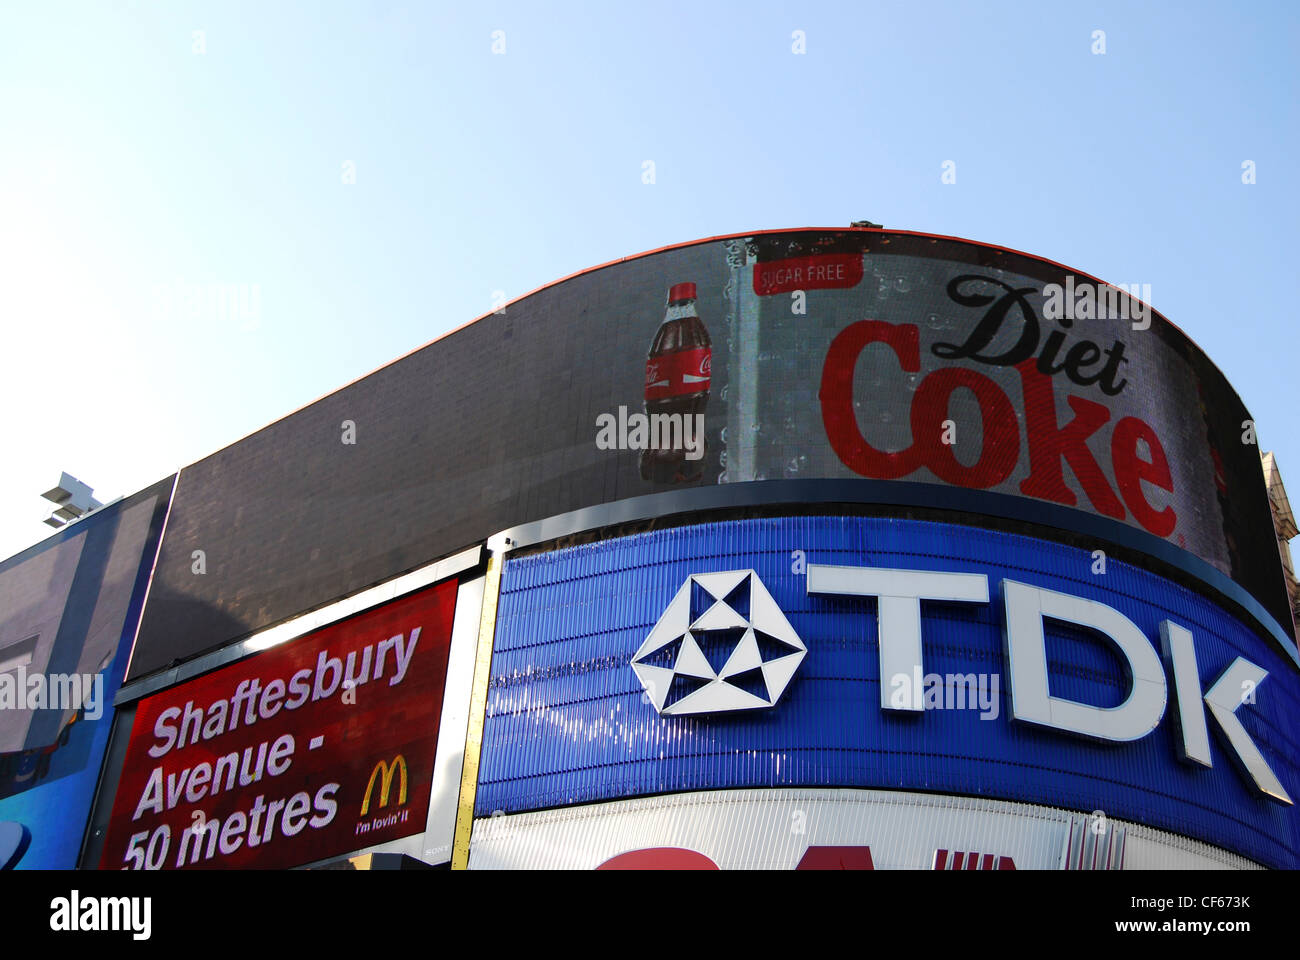 Advertising hoardings on buildings at Piccadilly Circus in London. - Stock Image